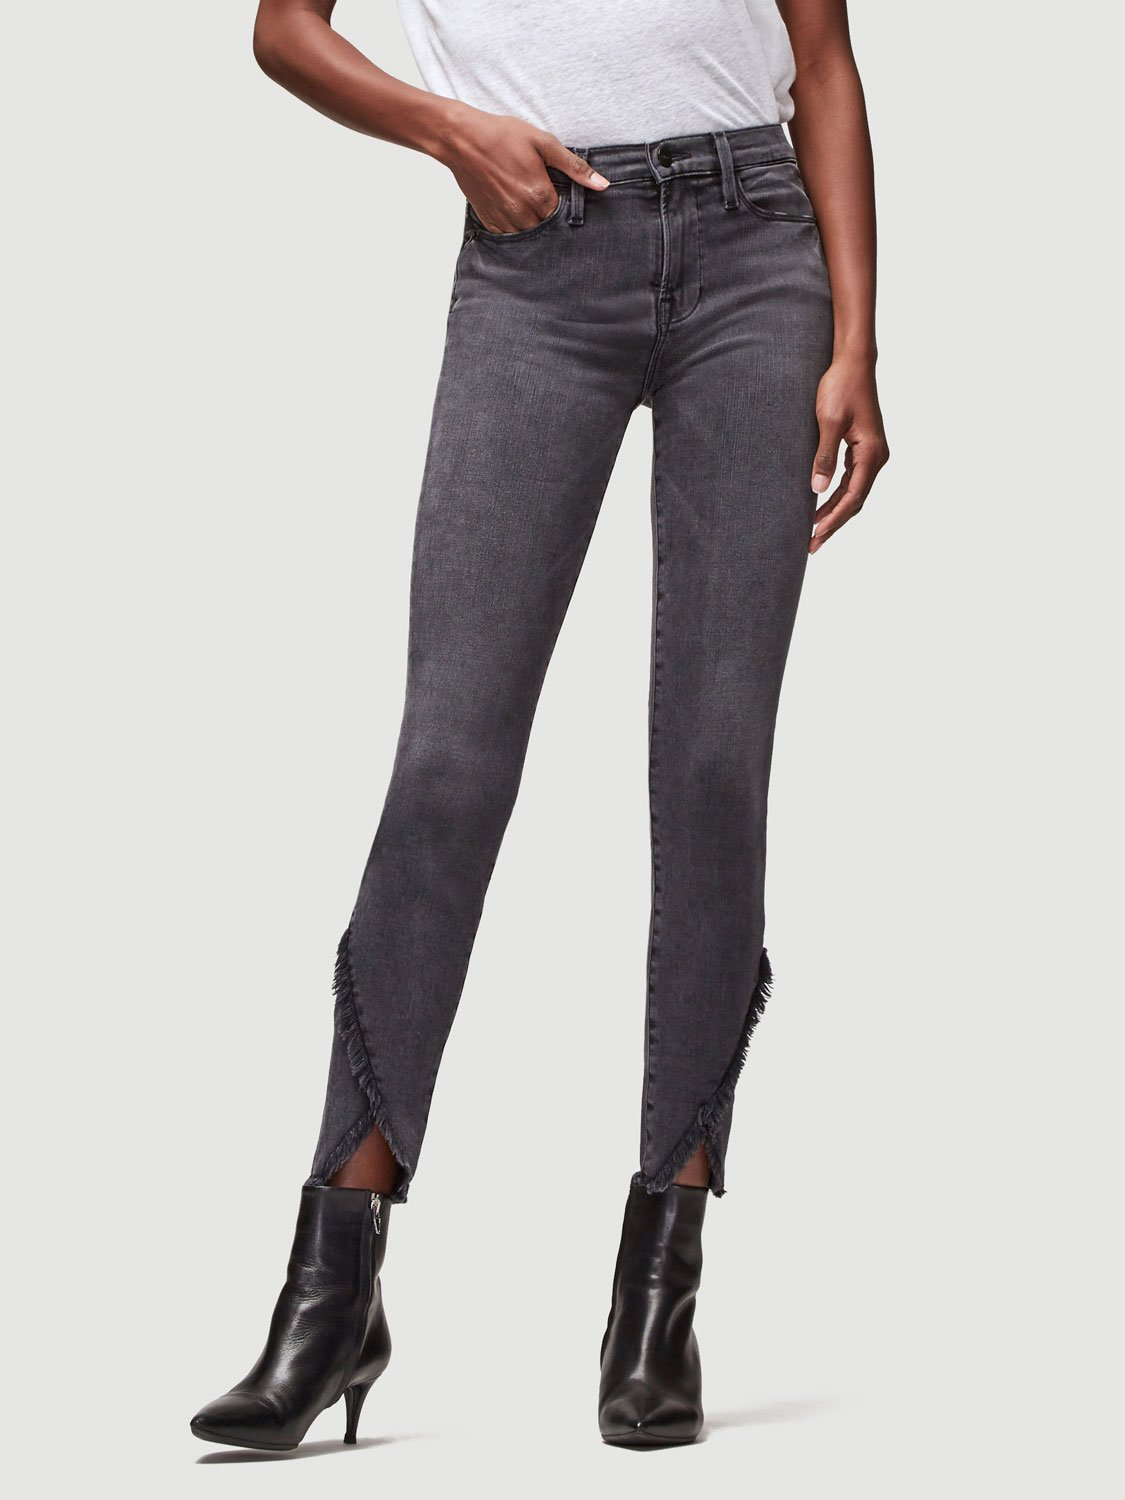 Frame Le High Skinny Asymmetrical Raw Triangle Hem. Classic 70s Inspired High-Rise Jean With A Contemporary Skinny Silhouette In A Charcoal Wash